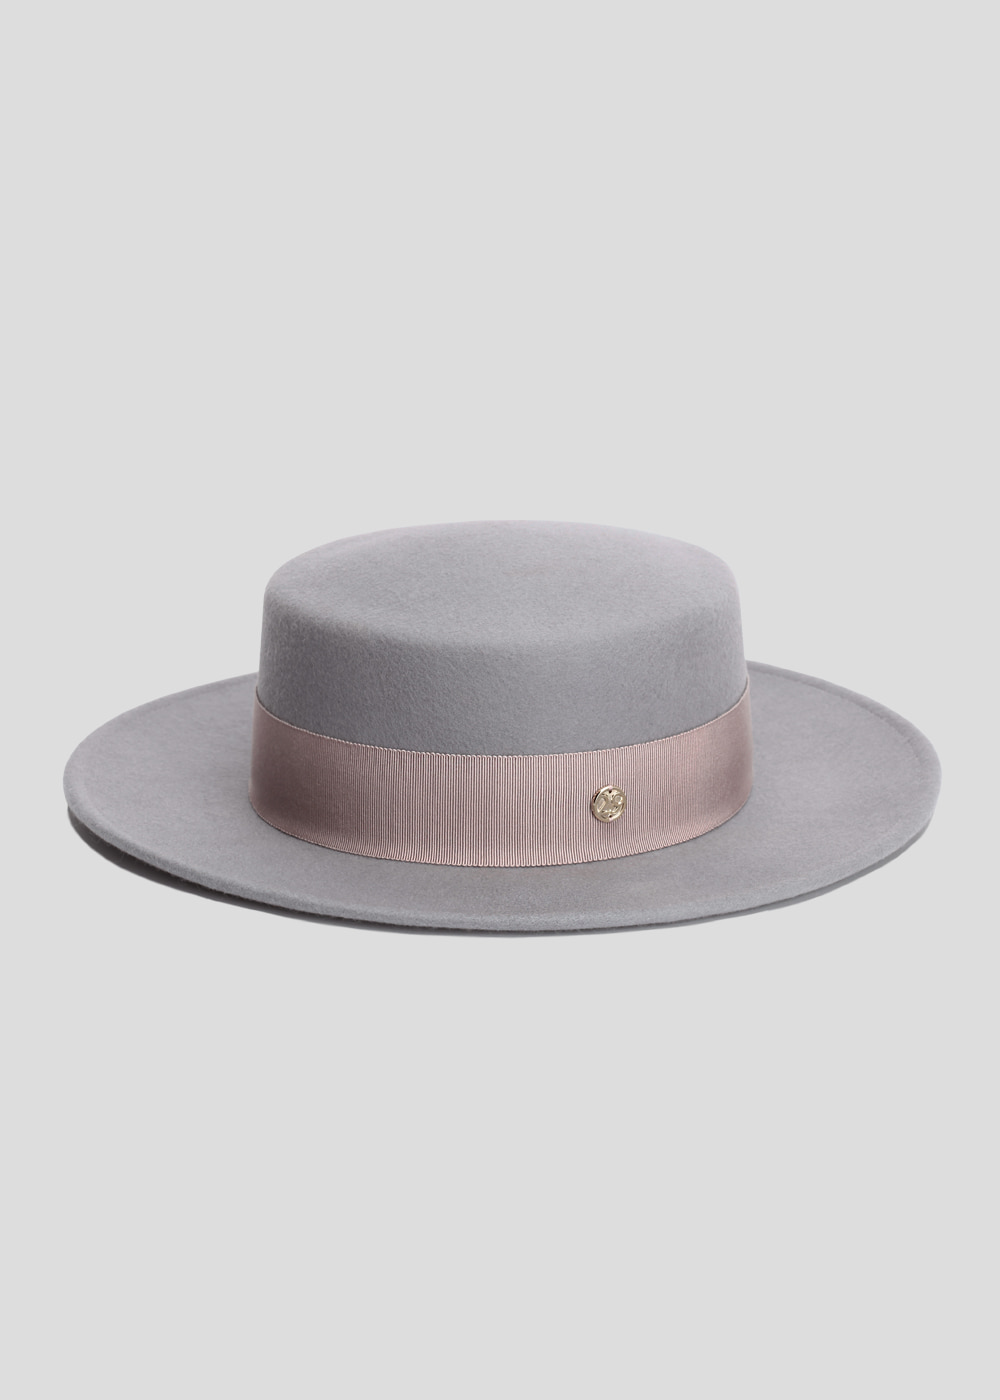 classic boater gray/ blush pink